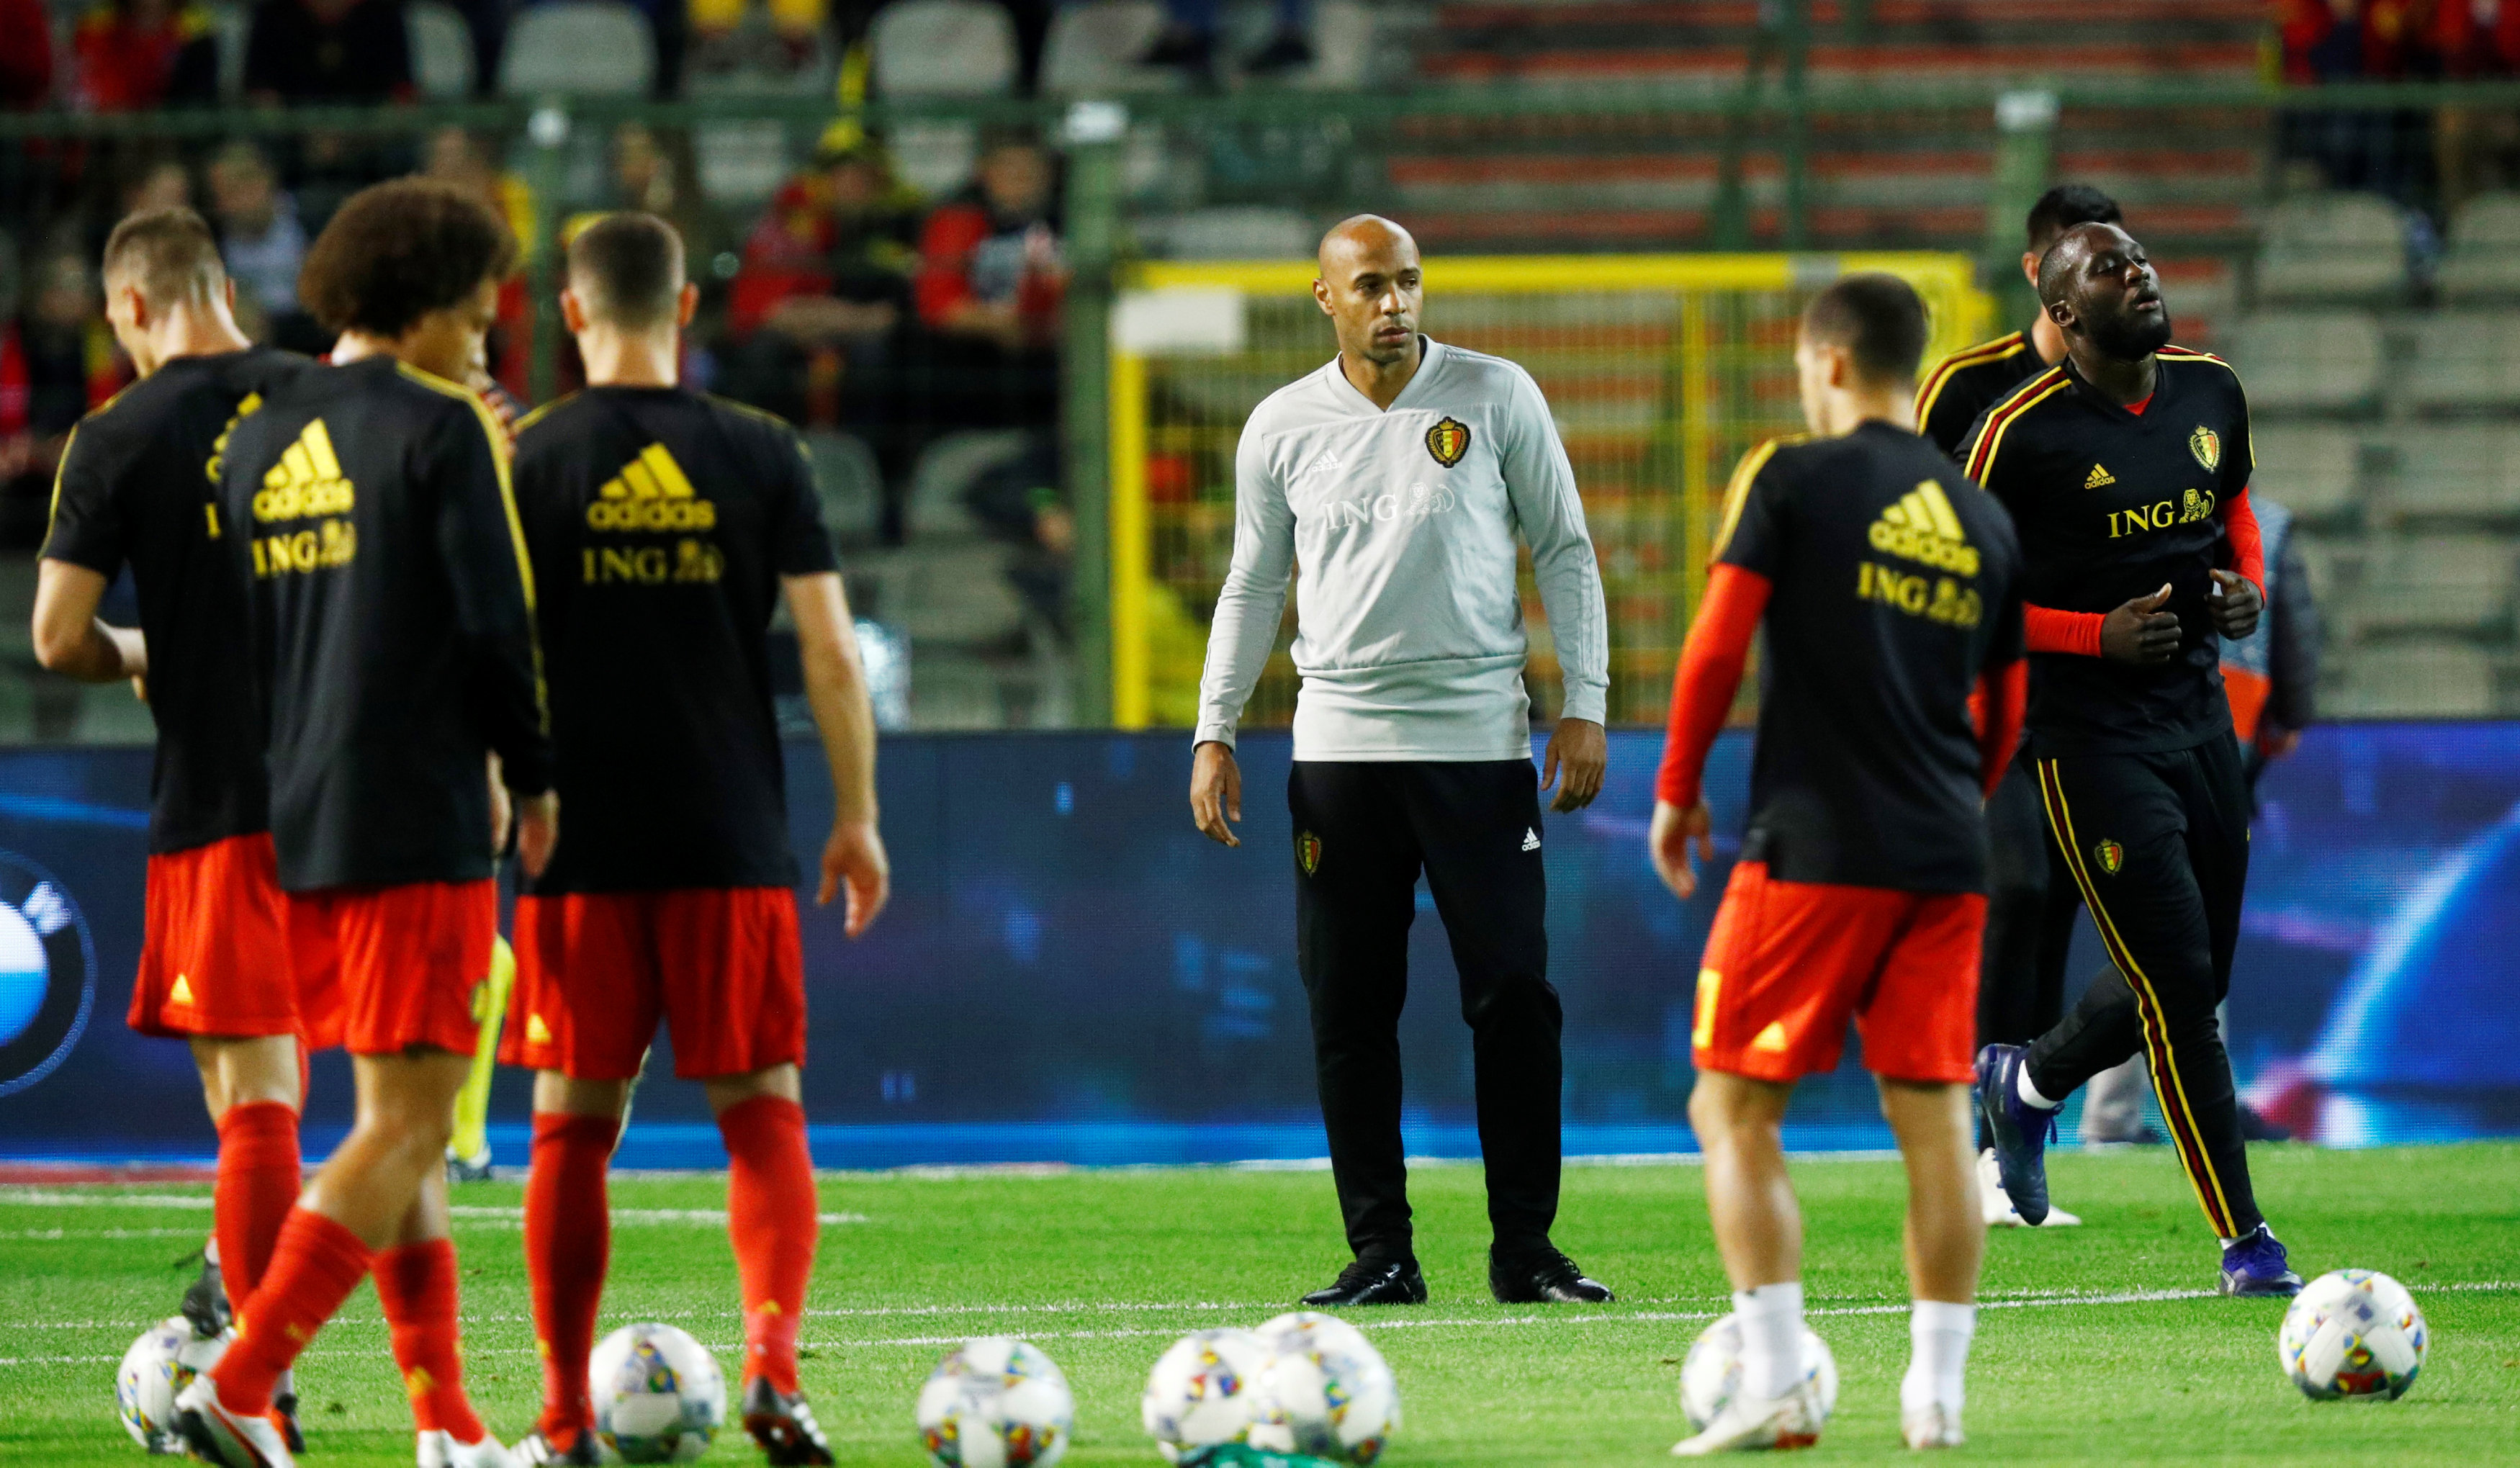 Football: Henry given first job as head coach by Monaco